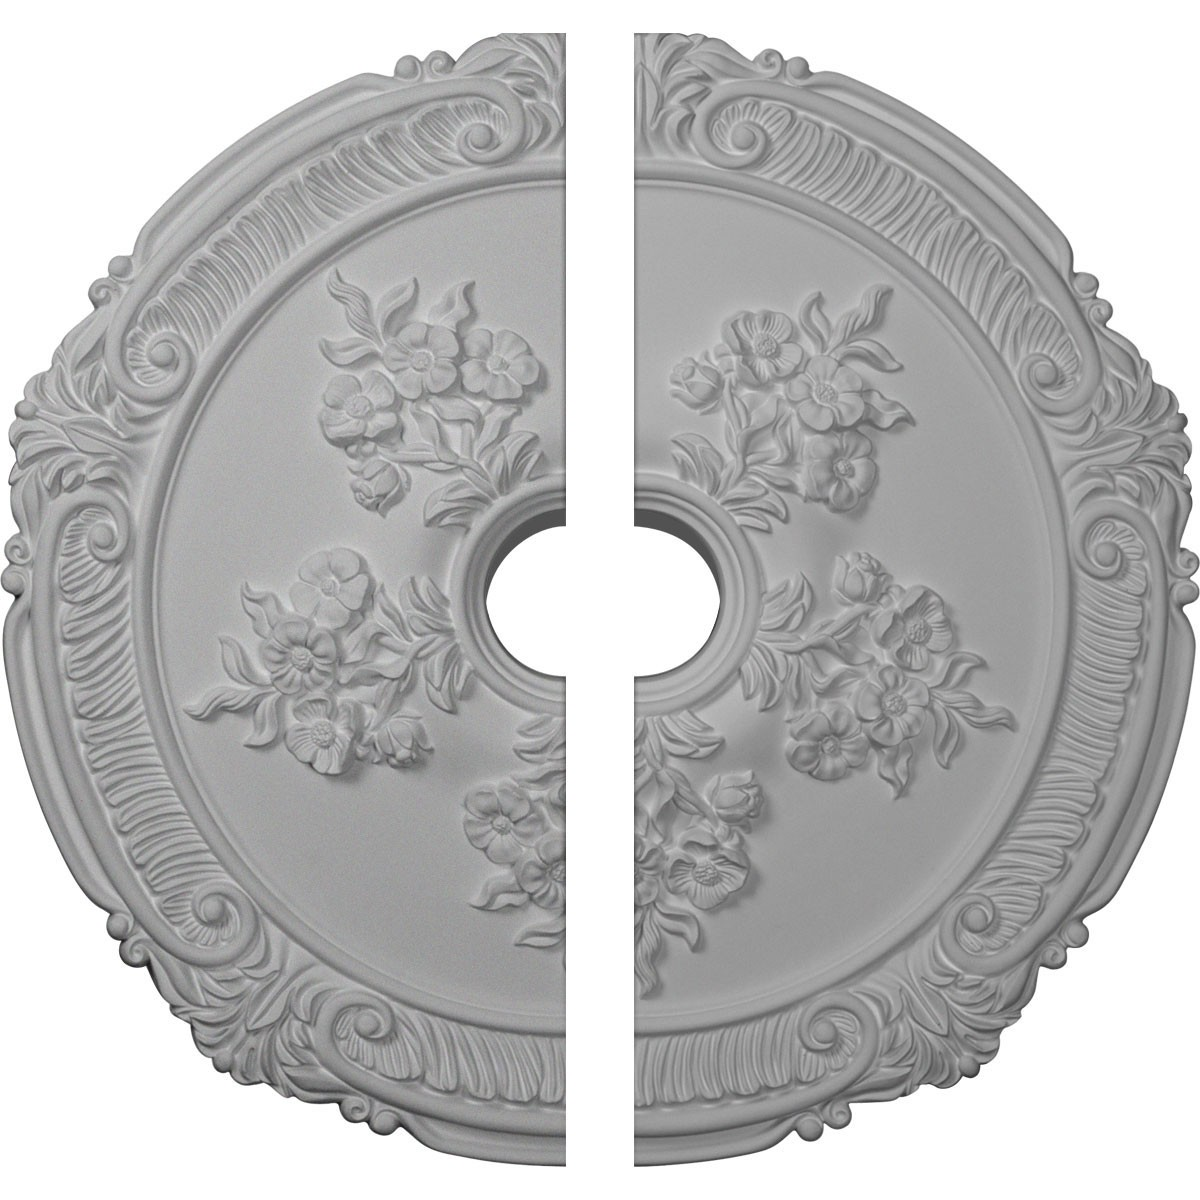 """EM-CM26AT2 - 26""""OD x 3 3/4""""ID x 1 1/2""""P Attica with Rose Ceiling Medallion, Two Piece (Fits Canopies up to 4 1/2"""")"""